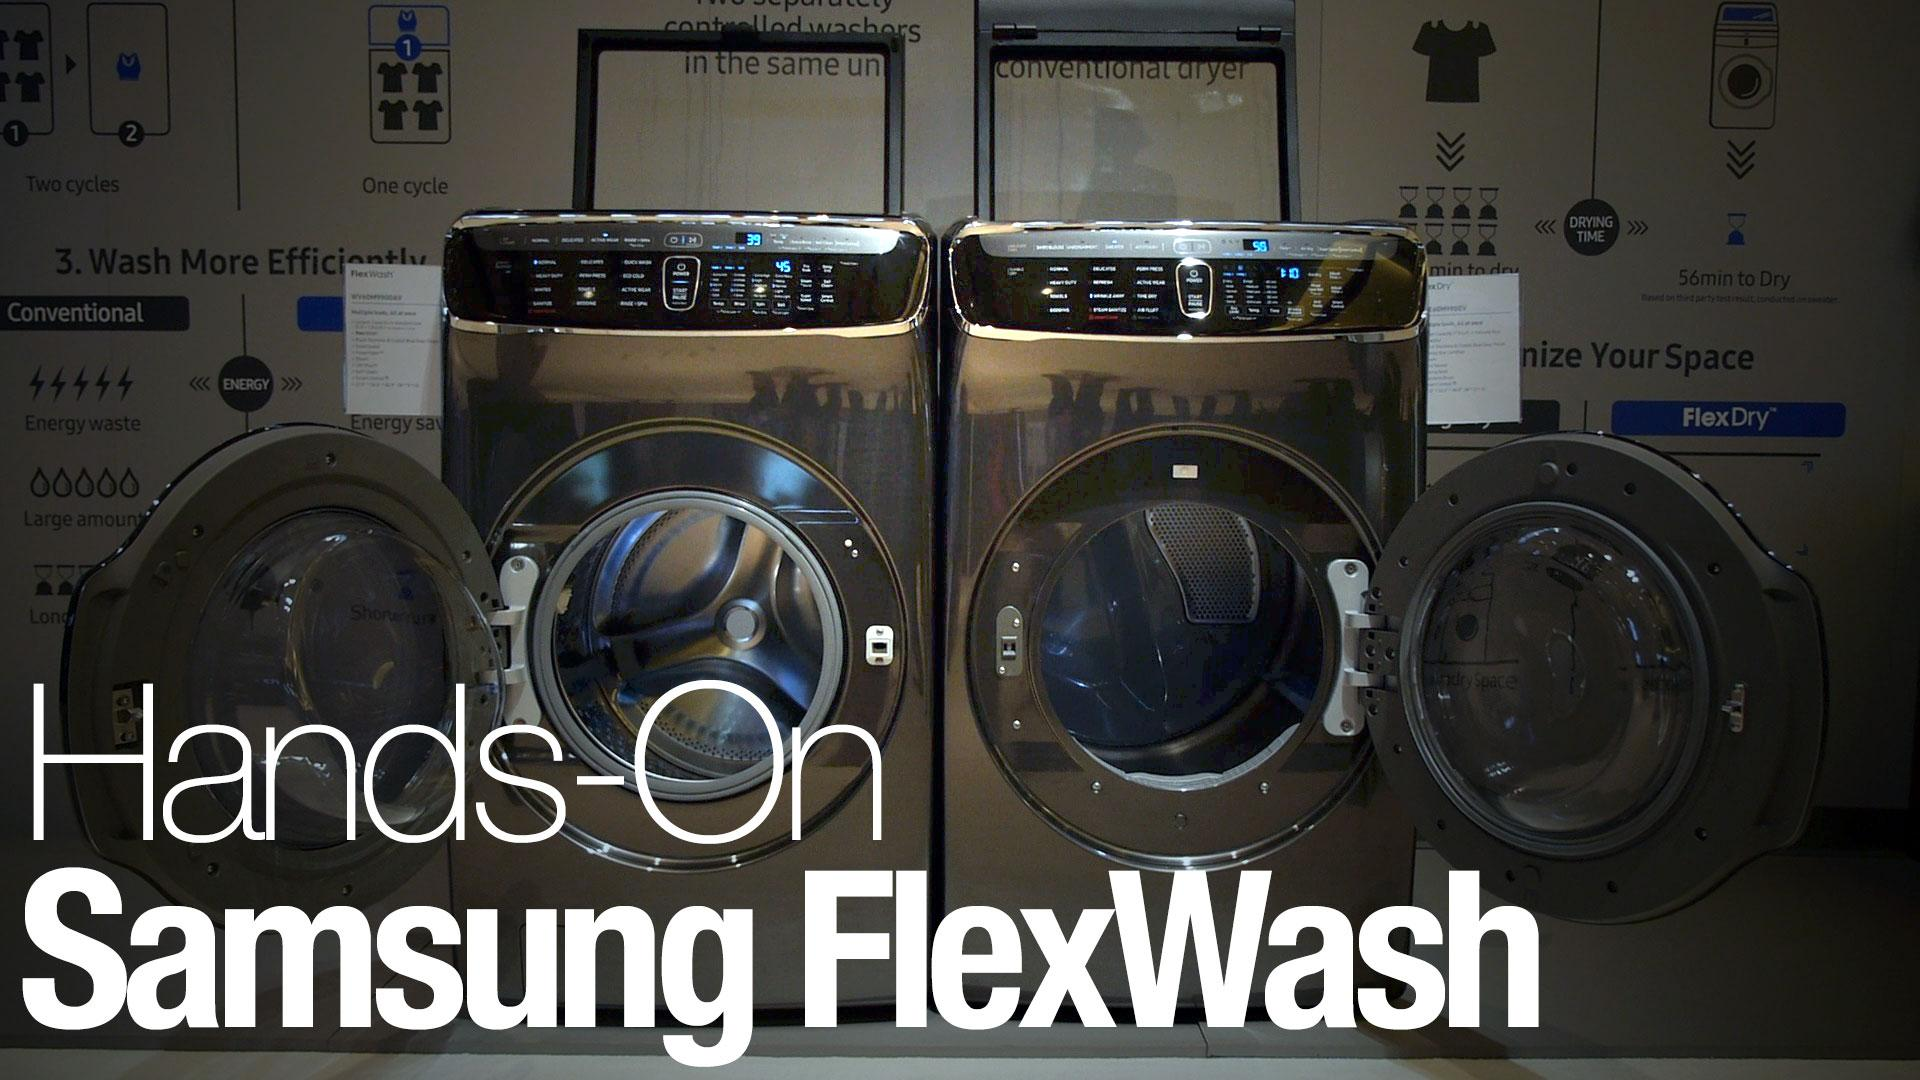 Samsung Cleans Up In 2017 With Flexwash And Flexdry Together Electric Clothes Dryer Additionally Maytag Laundry